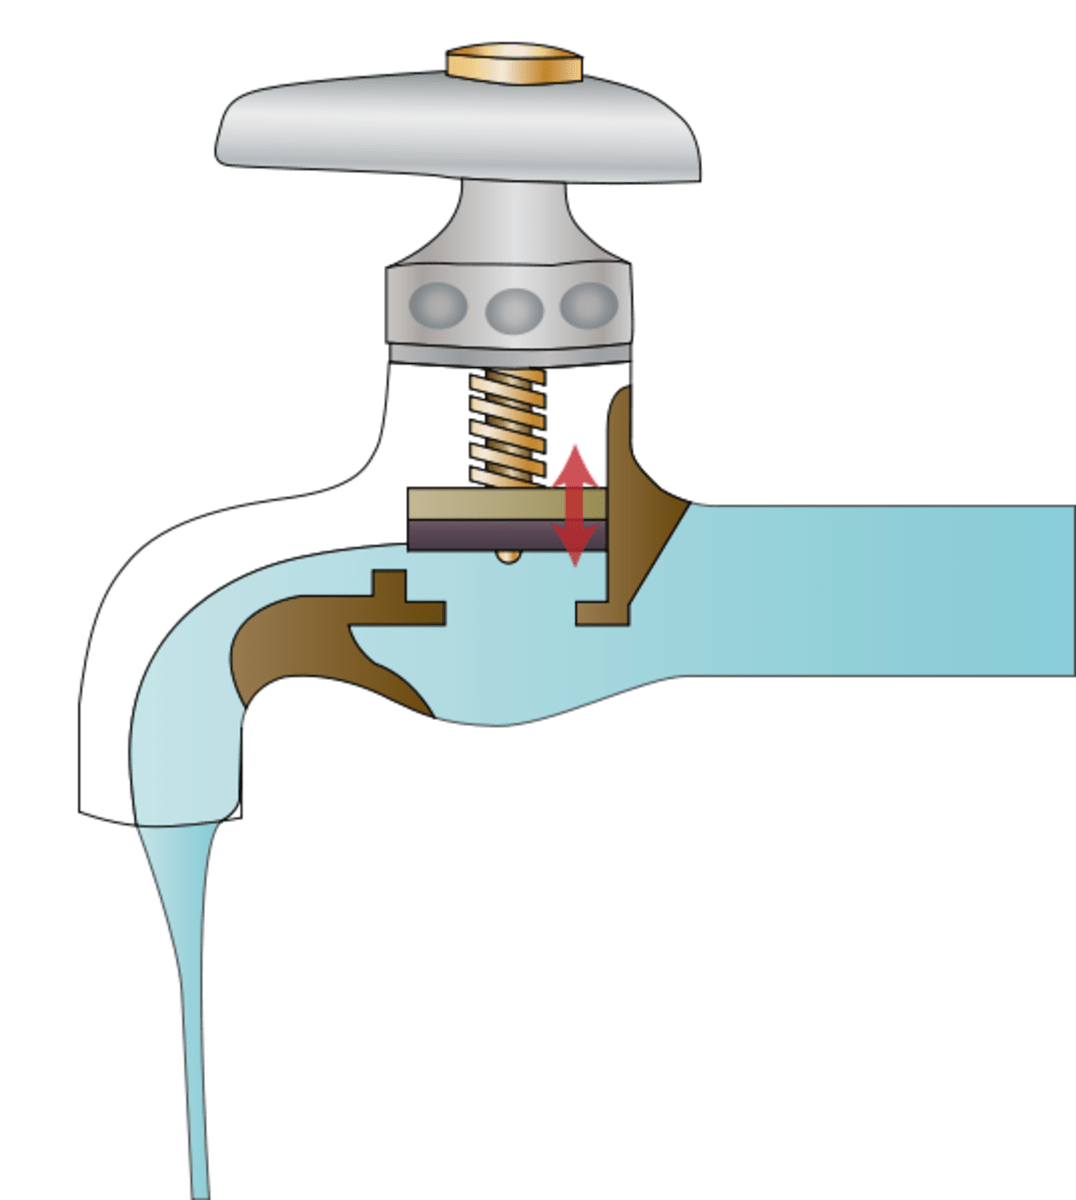 leaky outdoor faucet or water spigot